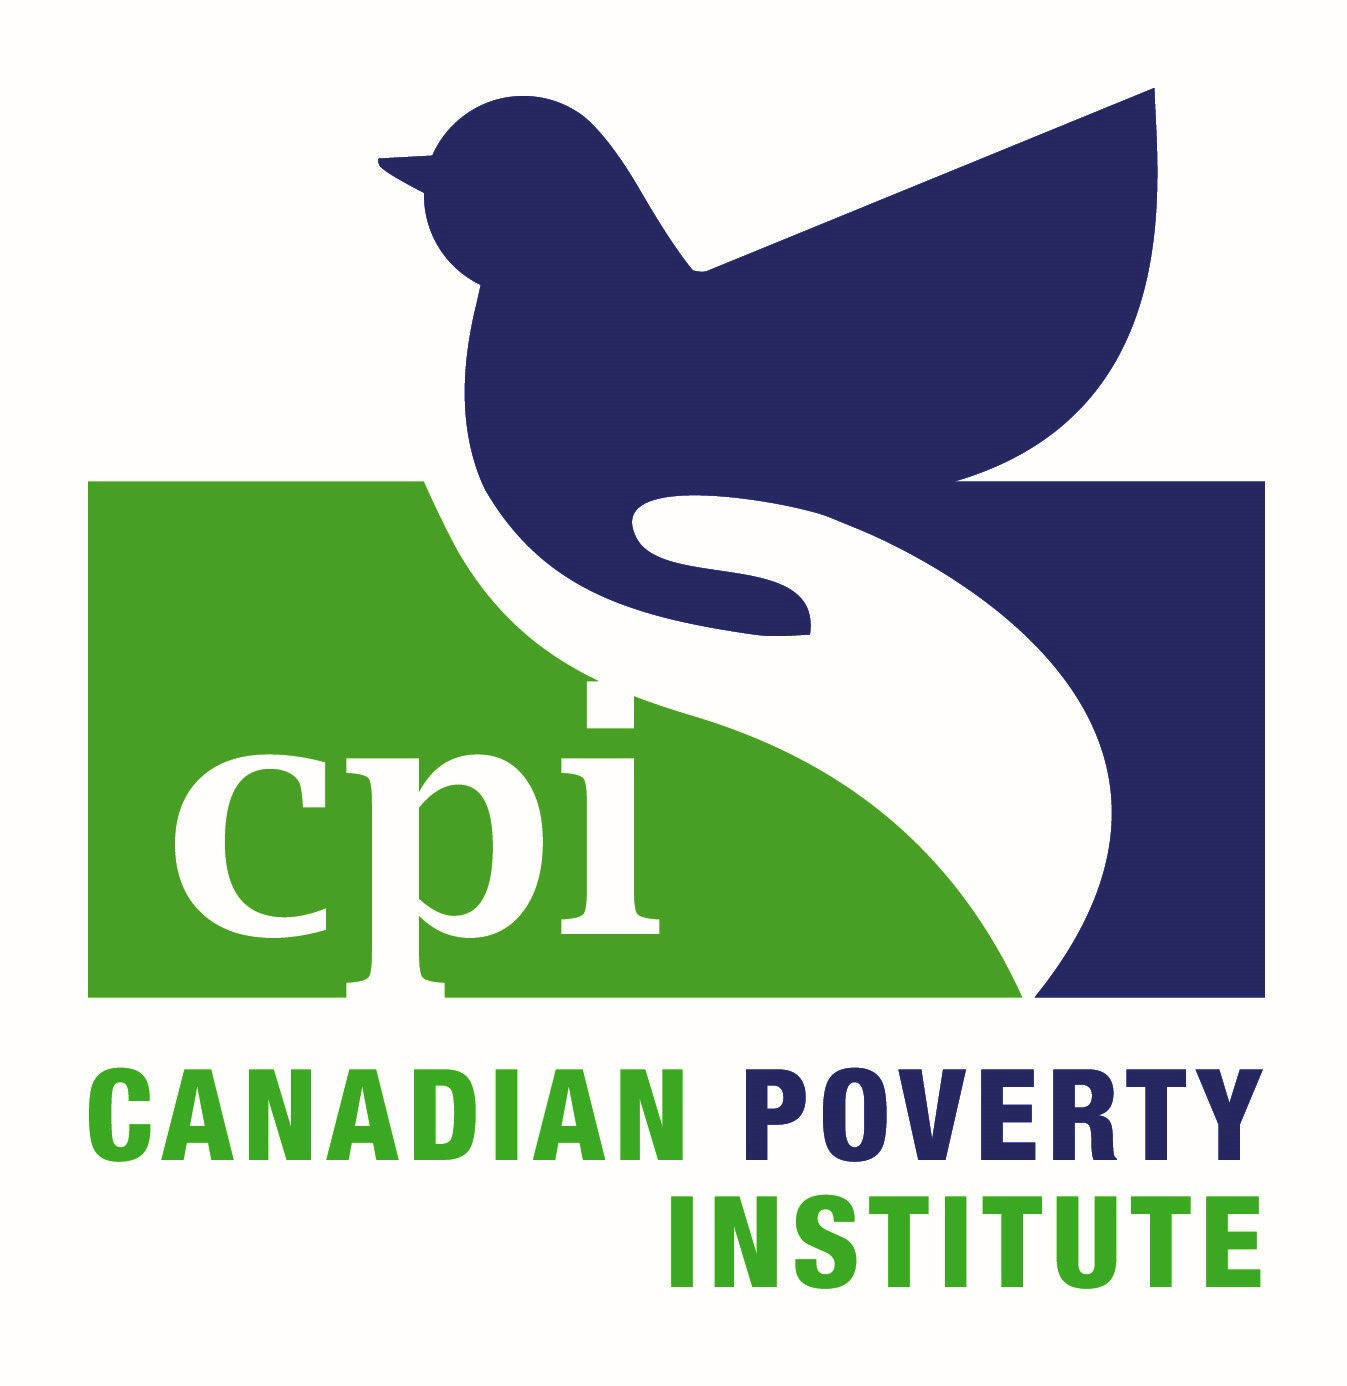 Canadian Poverty Institute.jpeg